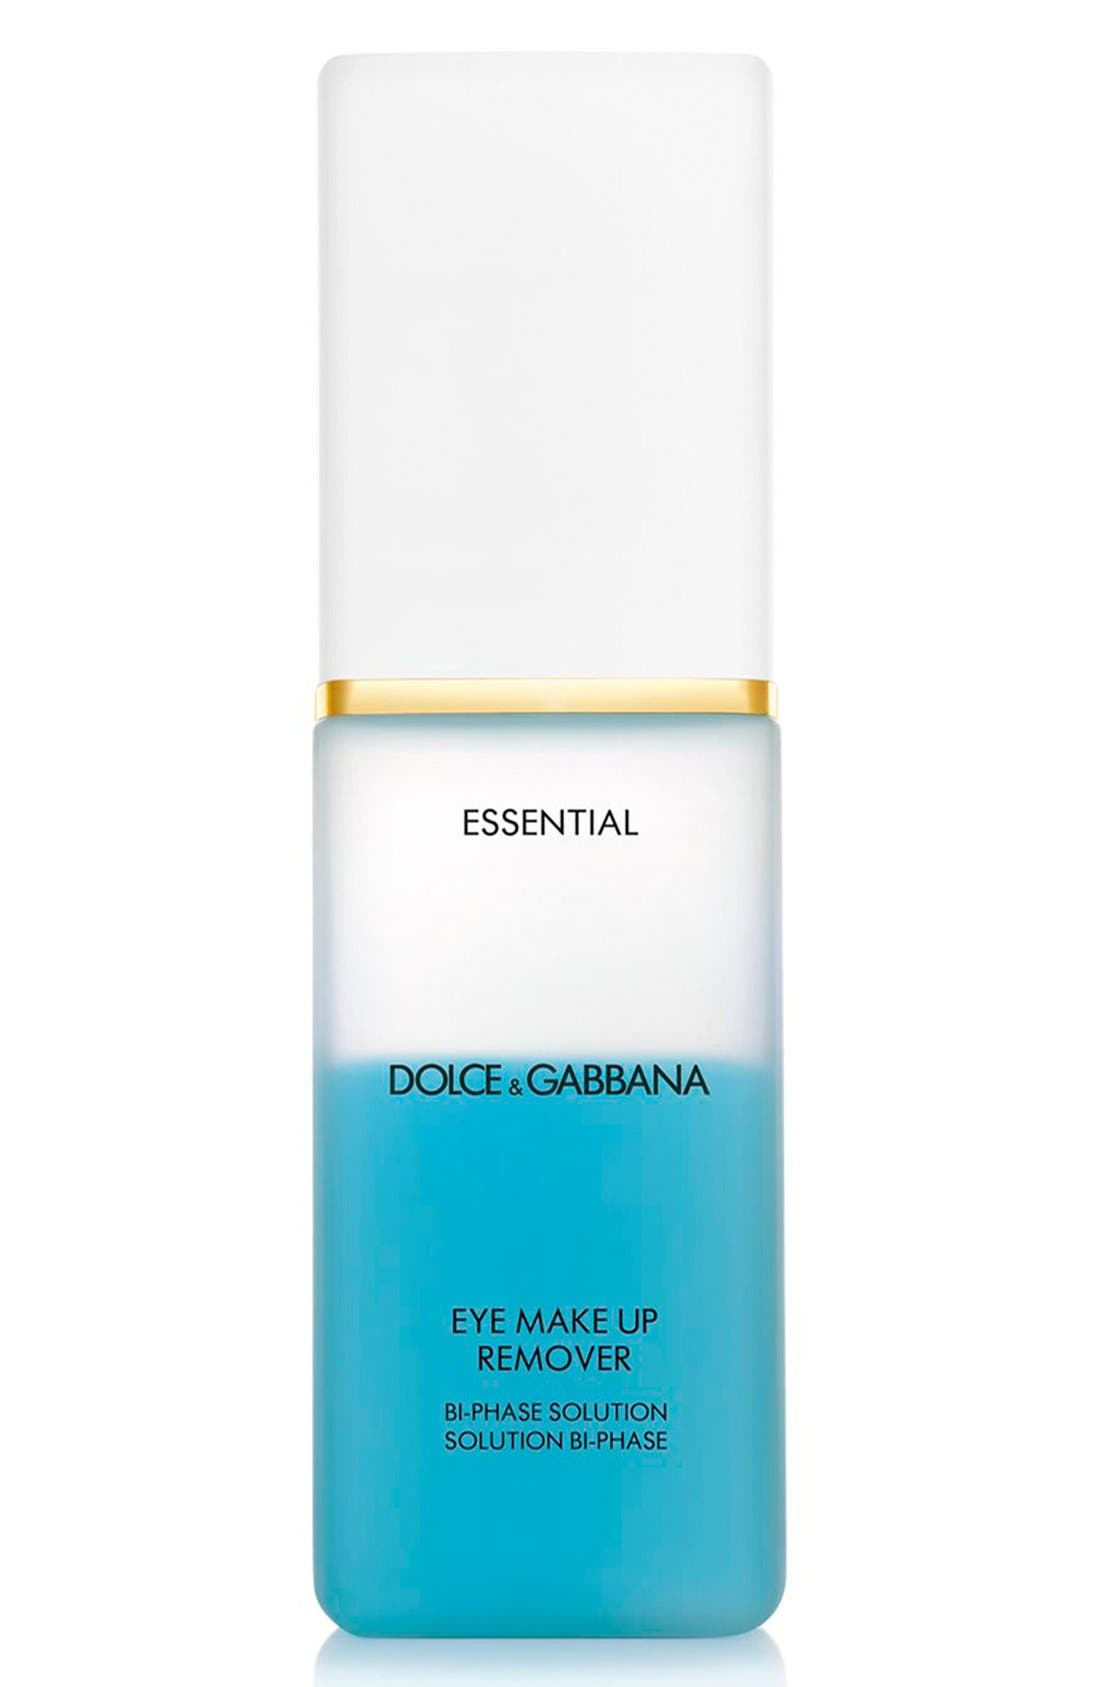 Dolce&Gabbana Beauty 'Essential' Eye Makeup Remover,                         Main,                         color, 000